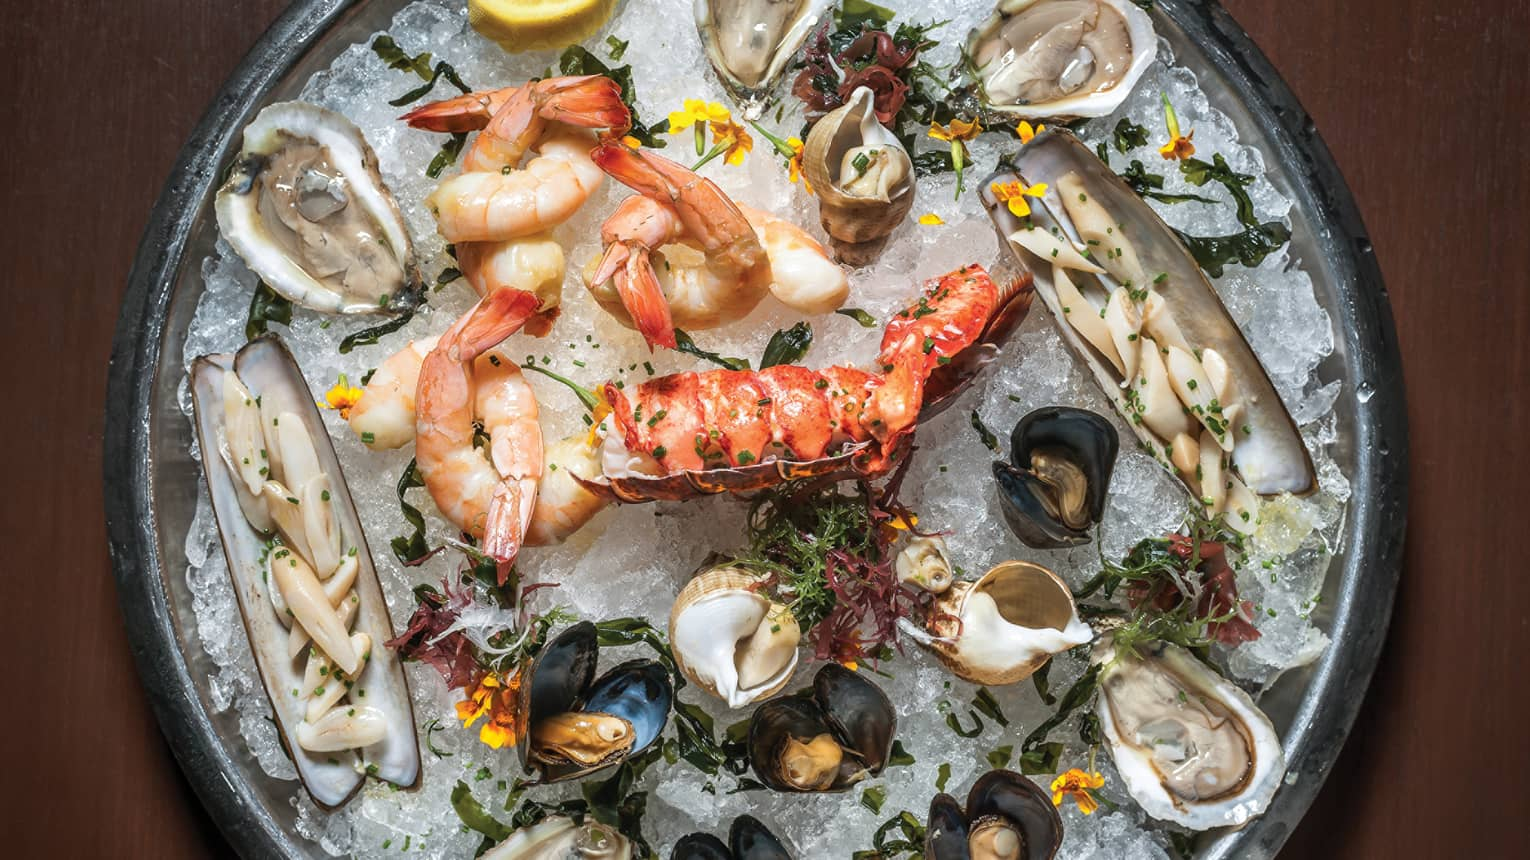 Shellfish, shrimp, oysters on ice on round silver tray